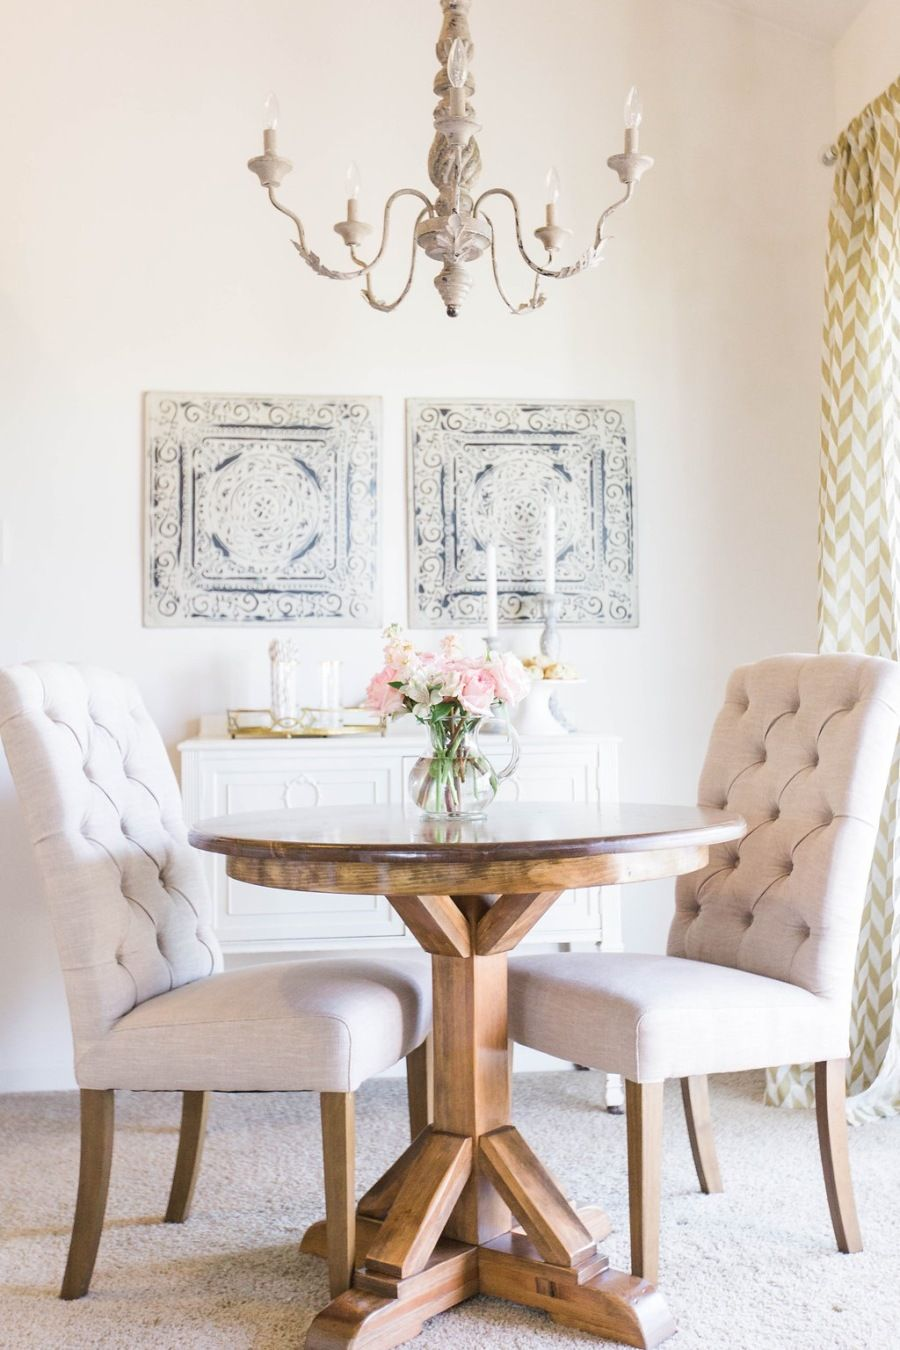 10 Narrow Dining Table Designs For A Small Dining Room Dining